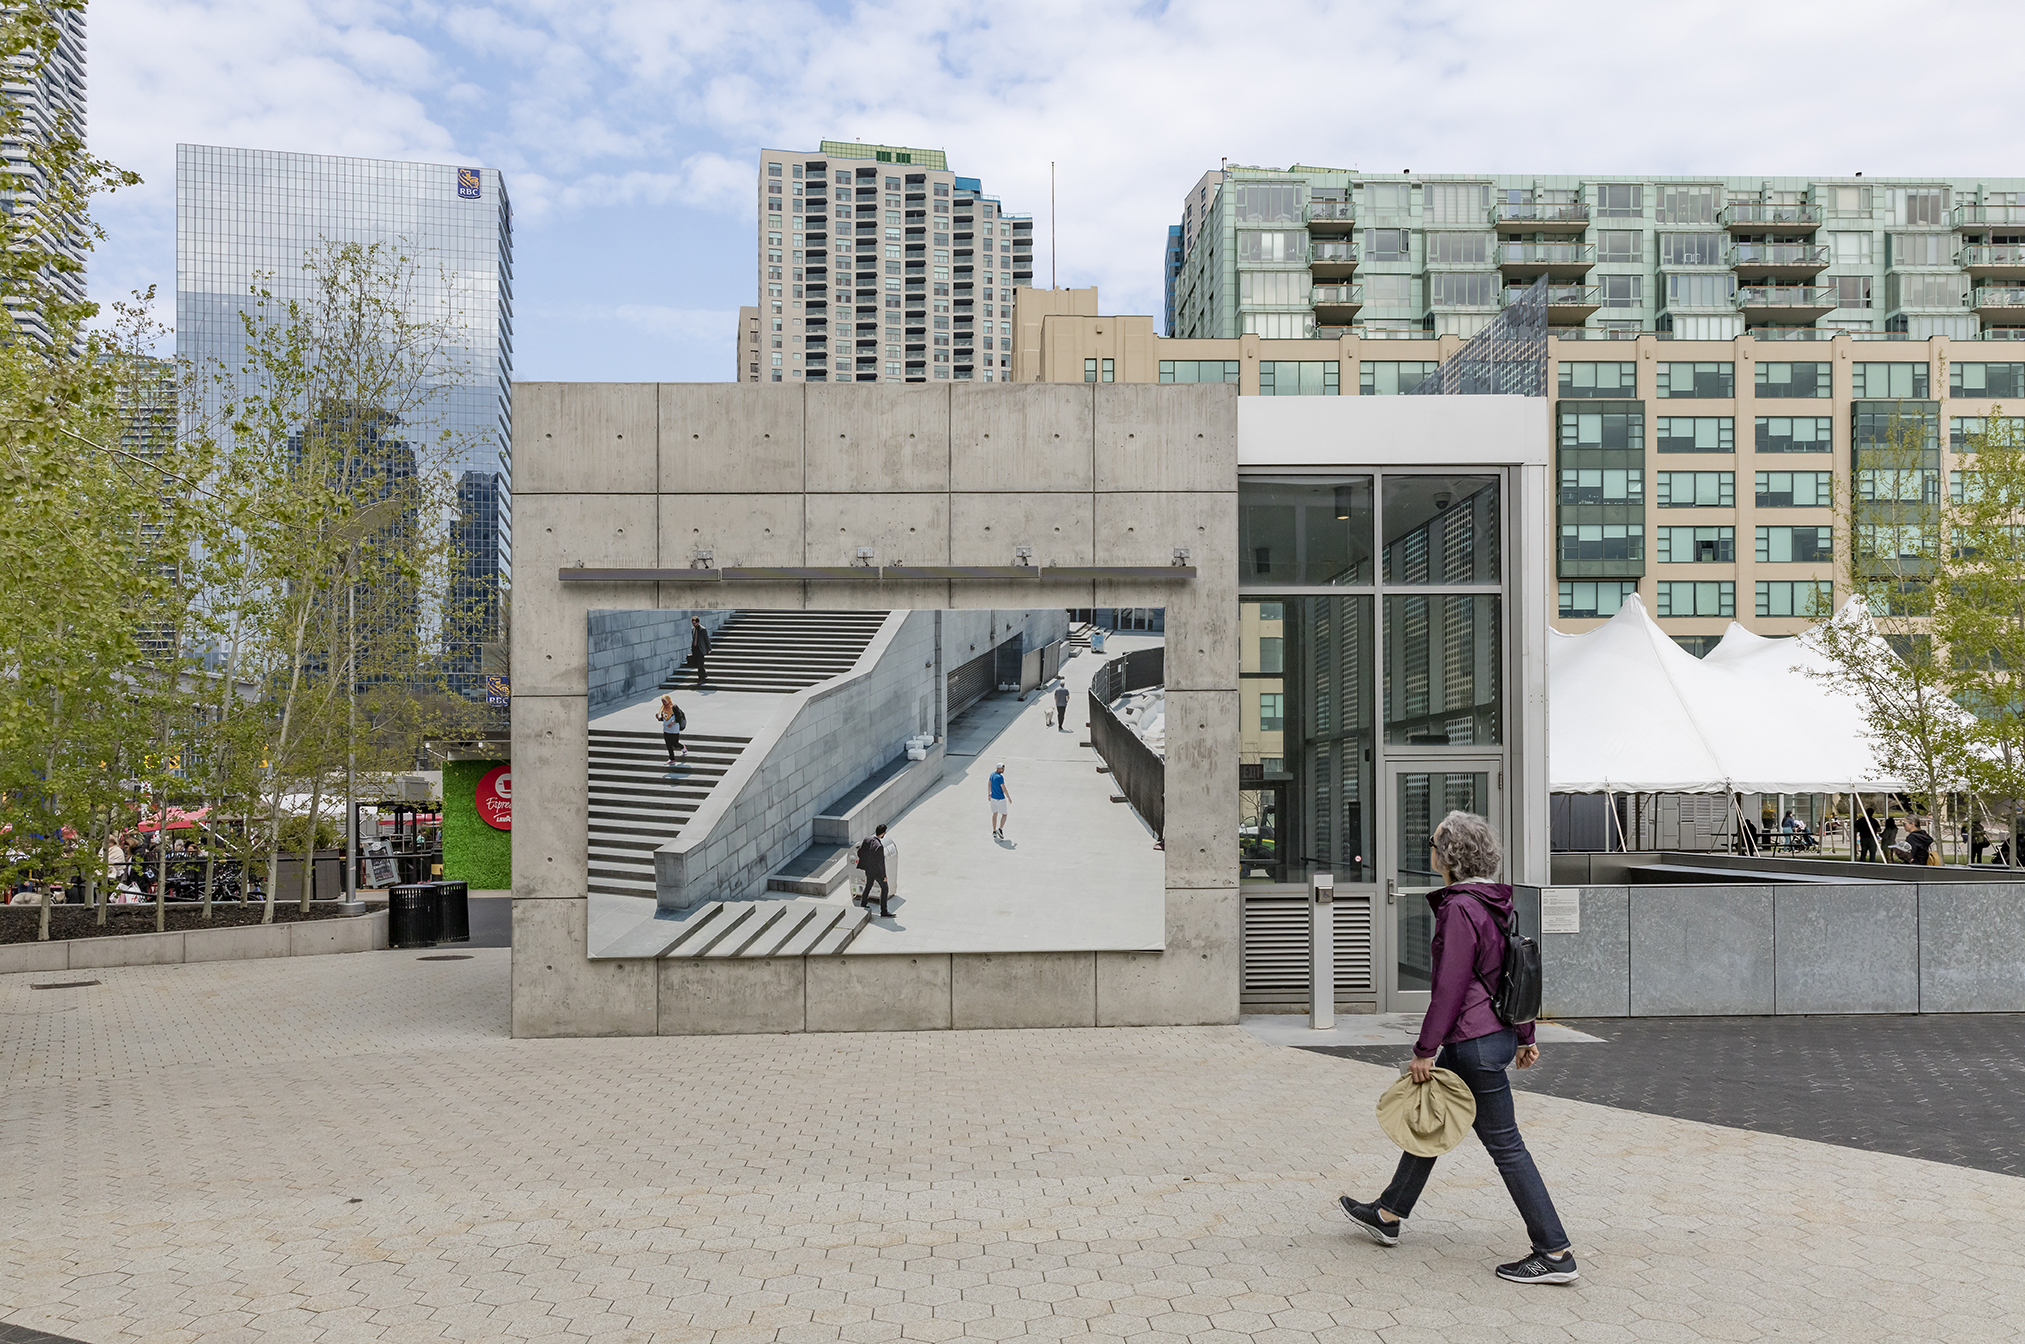 Esther Hovers, False Positives, Installation at Harbourfront Centre parking pavilion, Toronto, 2019. Photo: Toni Hafkenscheid. Courtesy CONTACT, the artist.